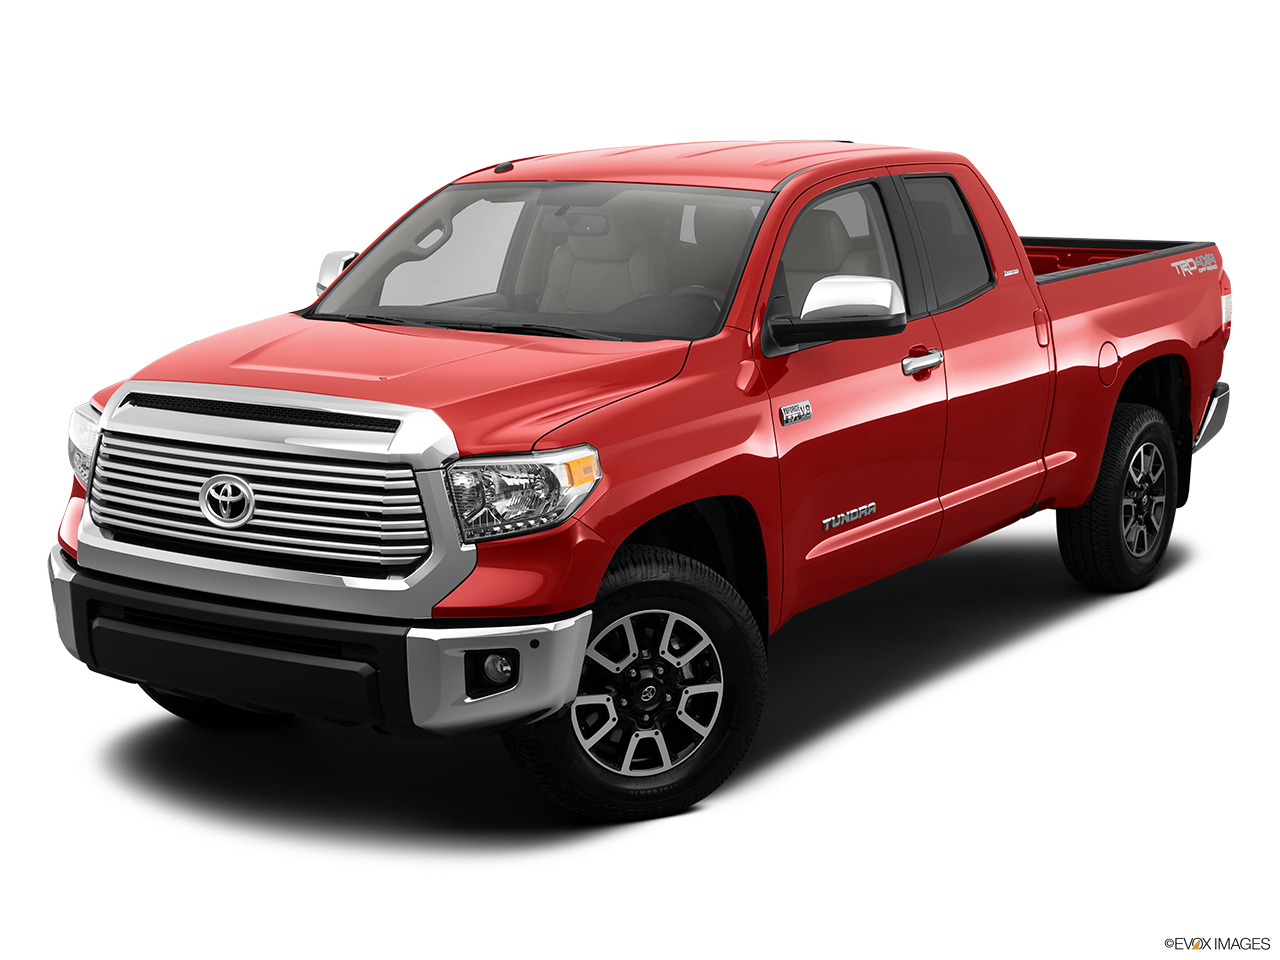 2014 toyota tundra 2wd truck double cab 5 7l v8 6 spd automatic ltd. Black Bedroom Furniture Sets. Home Design Ideas